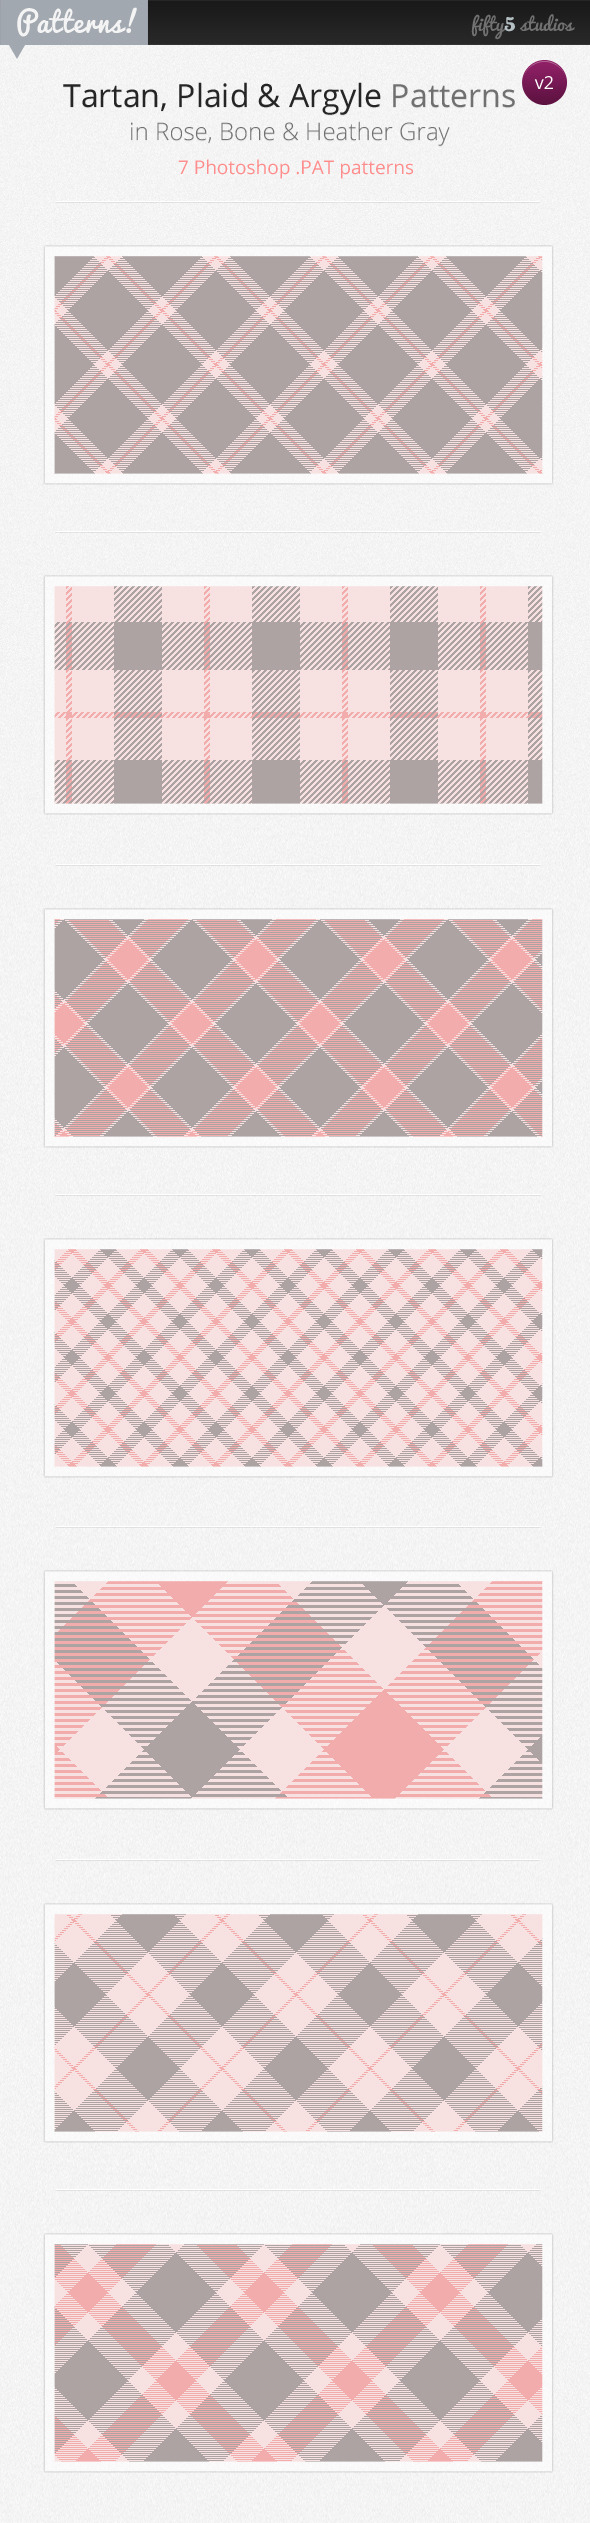 7 Tartan, Plaid & Argyle Patterns - v2 - Photoshop Add-ons